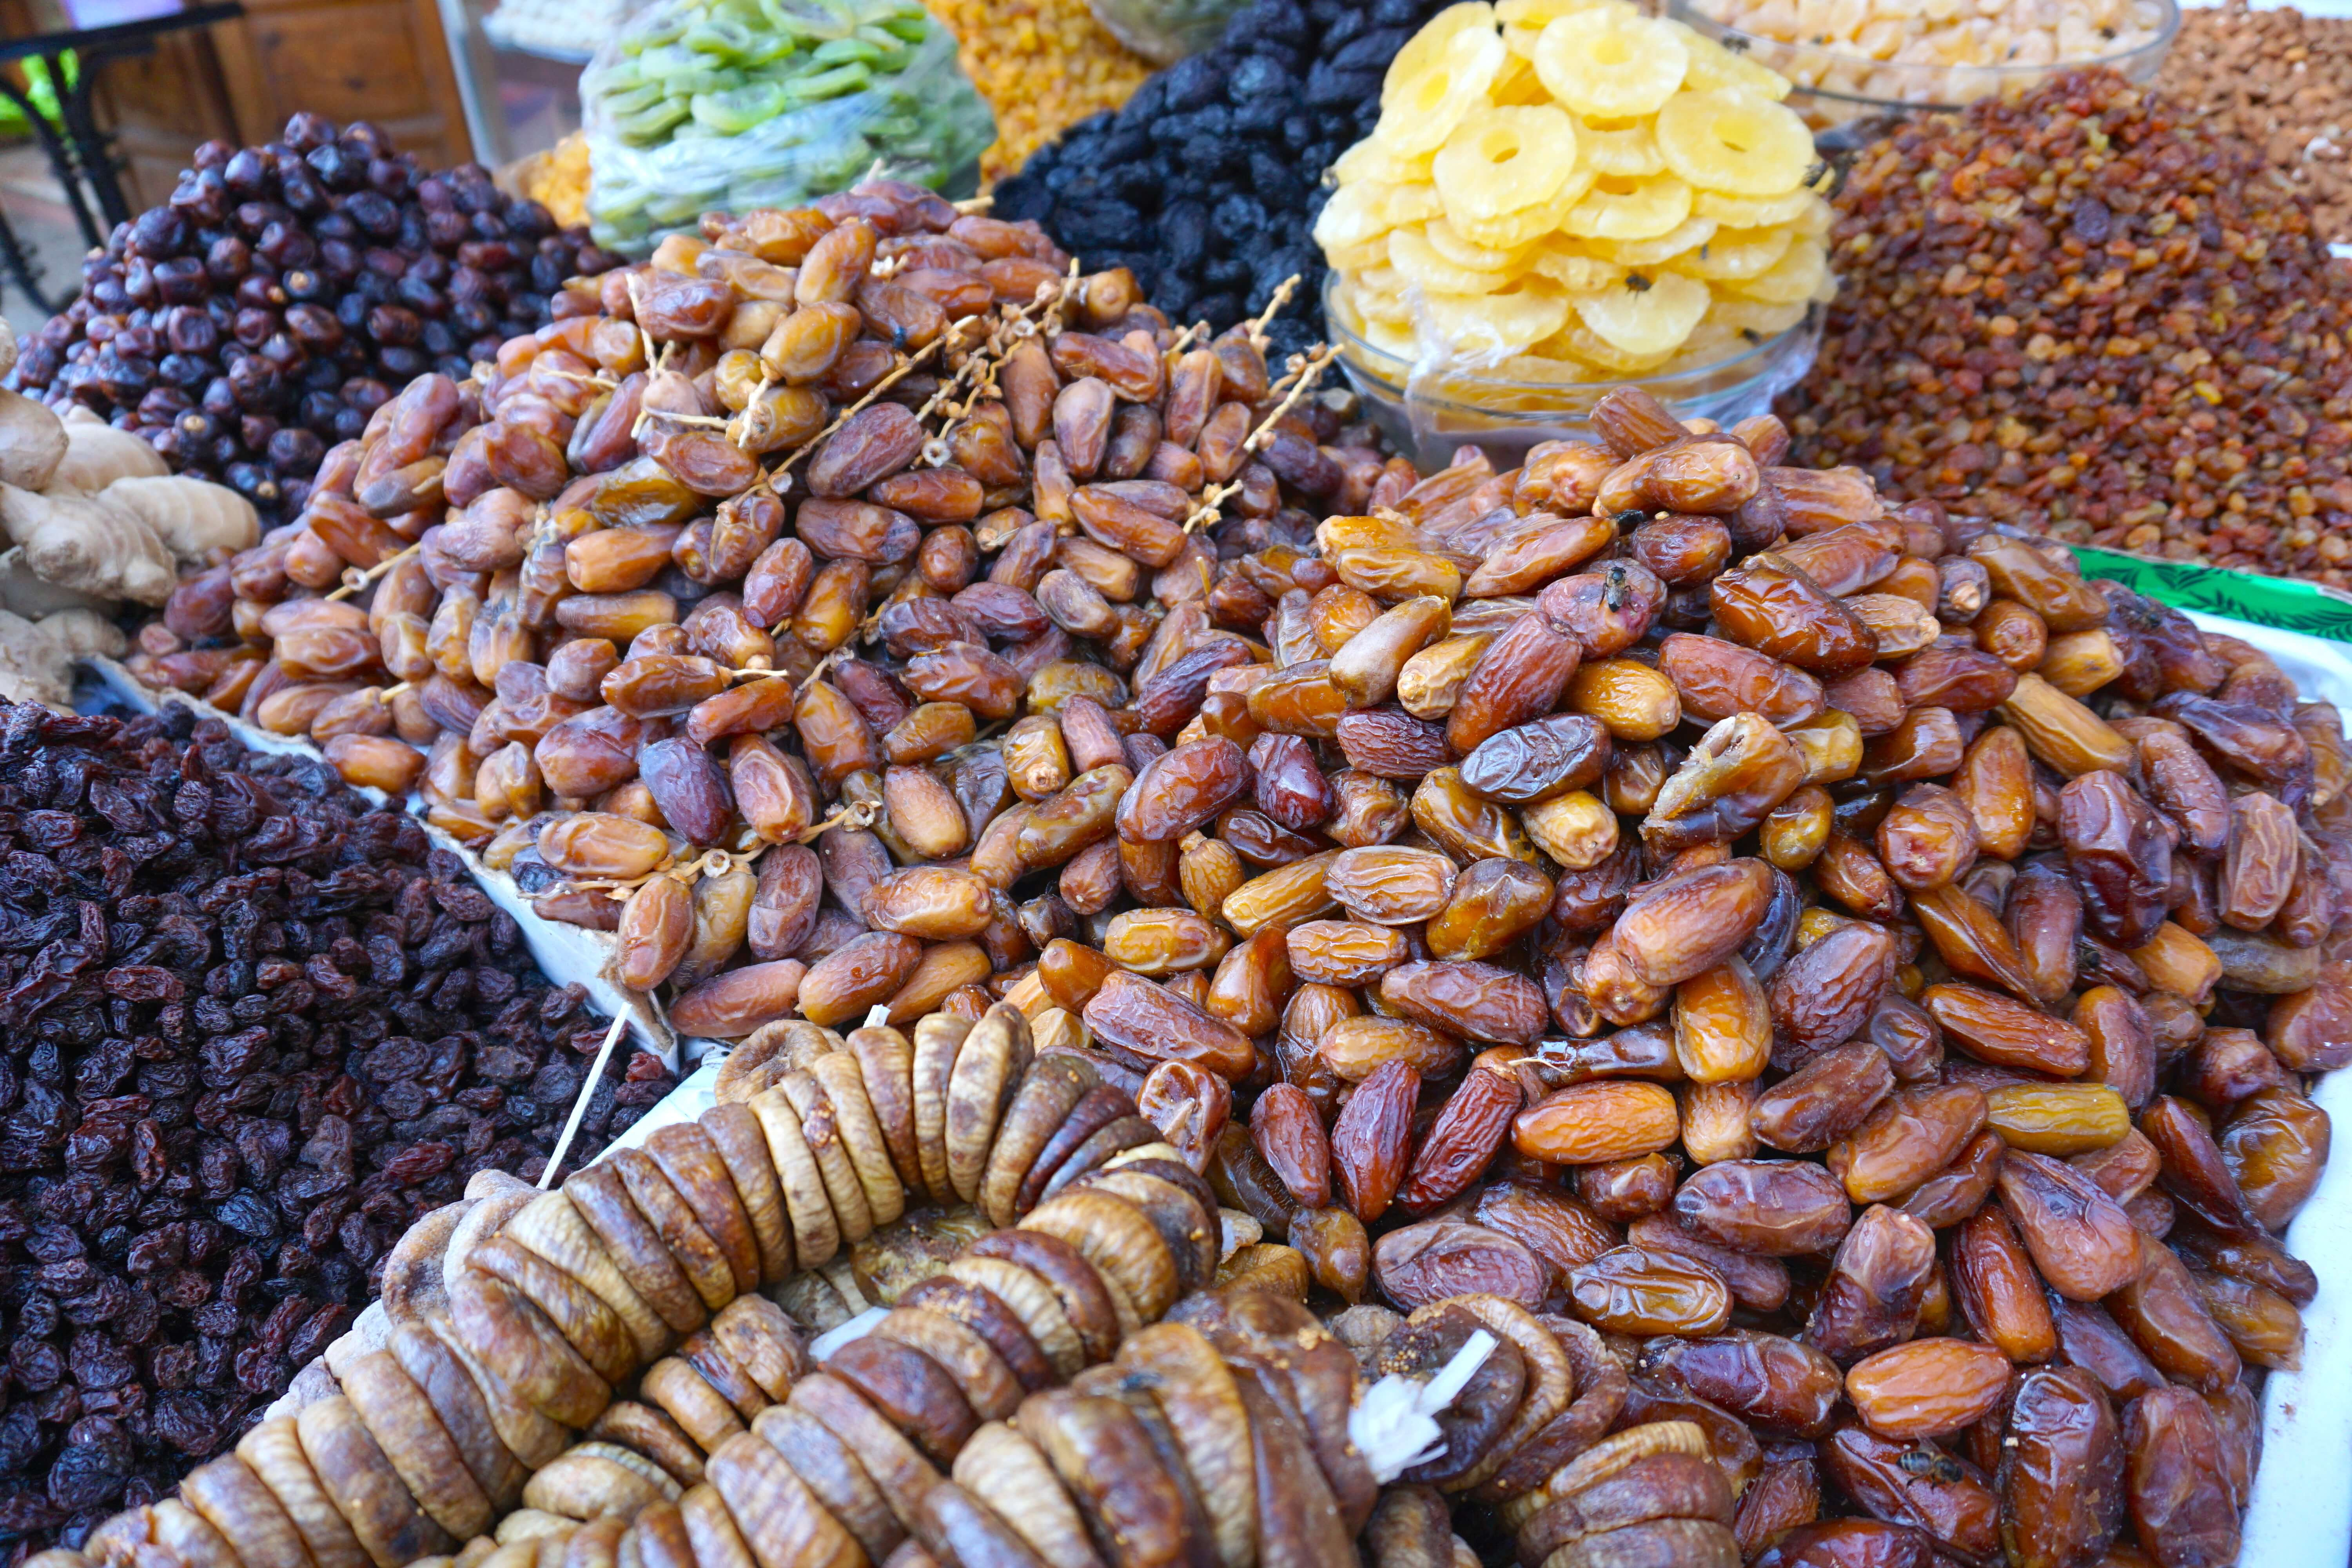 Dates - Morocco Food Guide: Delicious foods you need to try while visiting Morocco